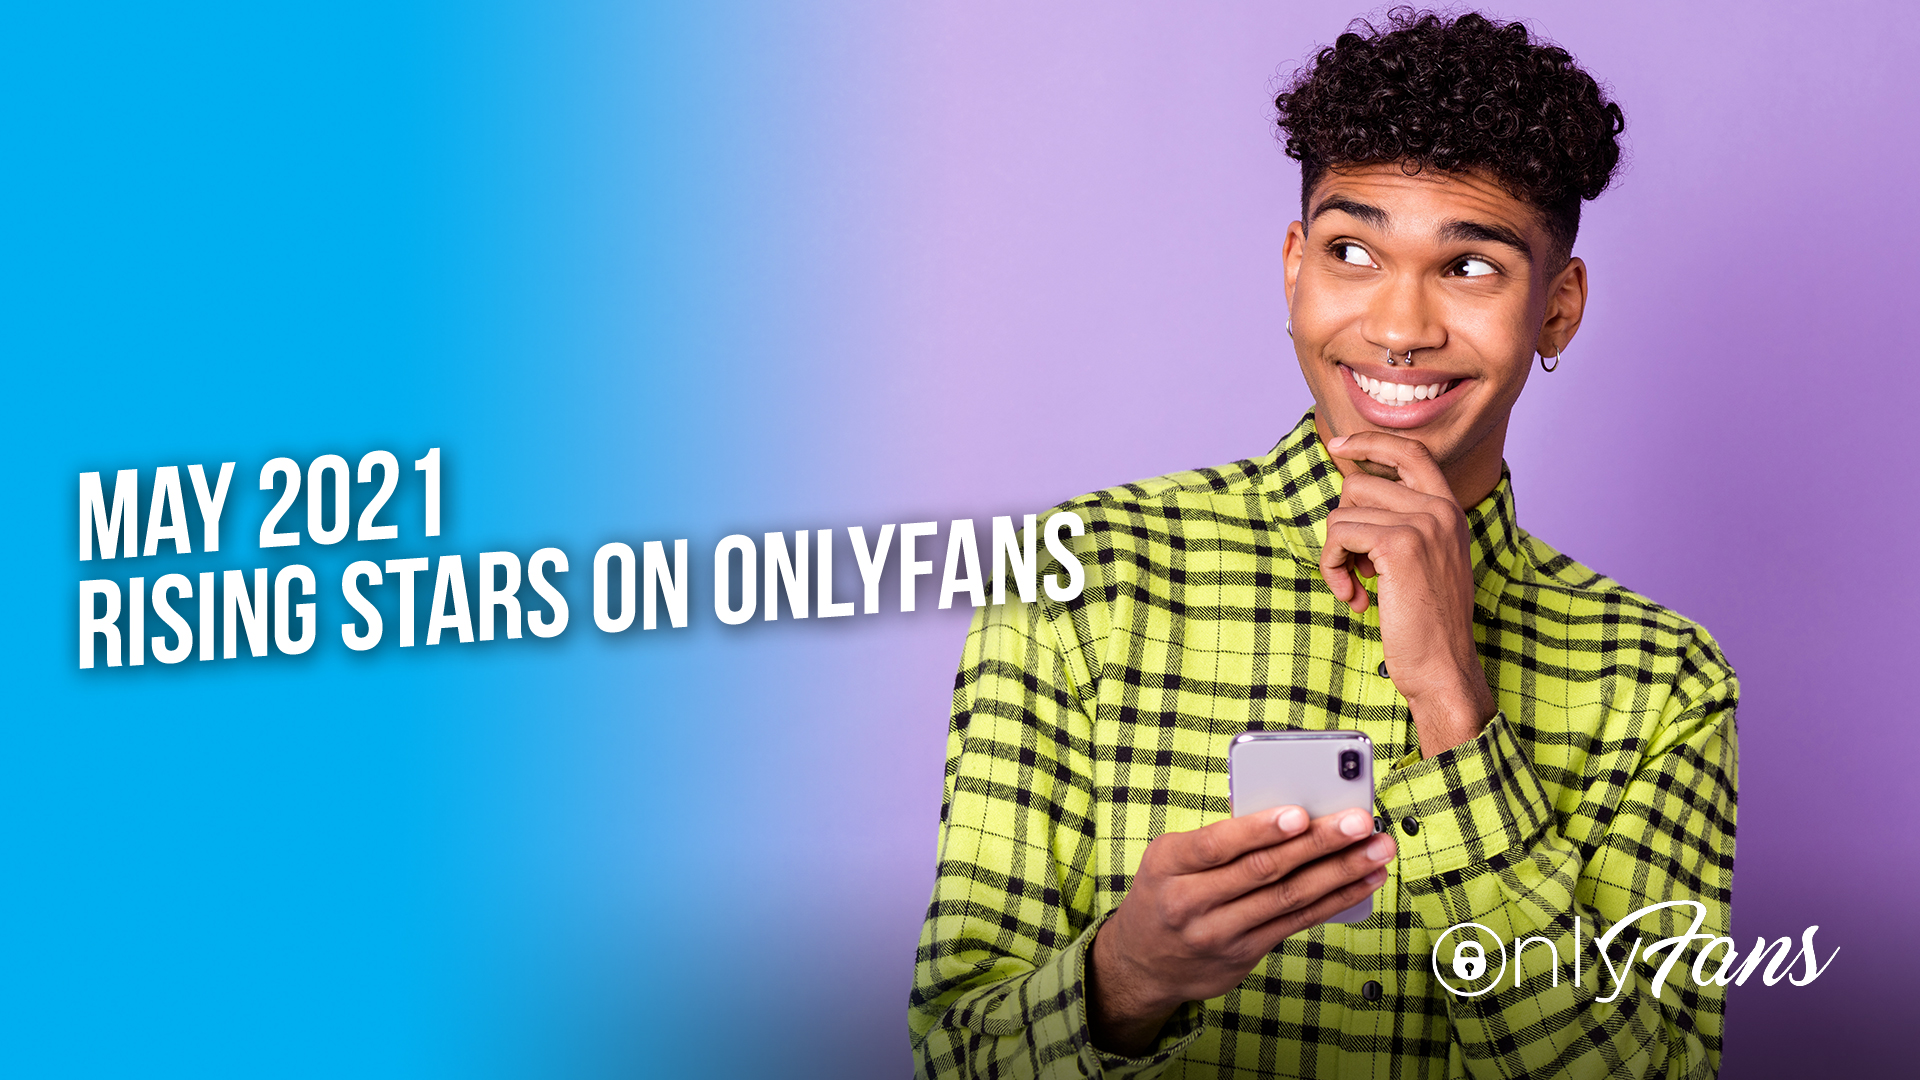 May 2021 Rising Stars on OnlyFans